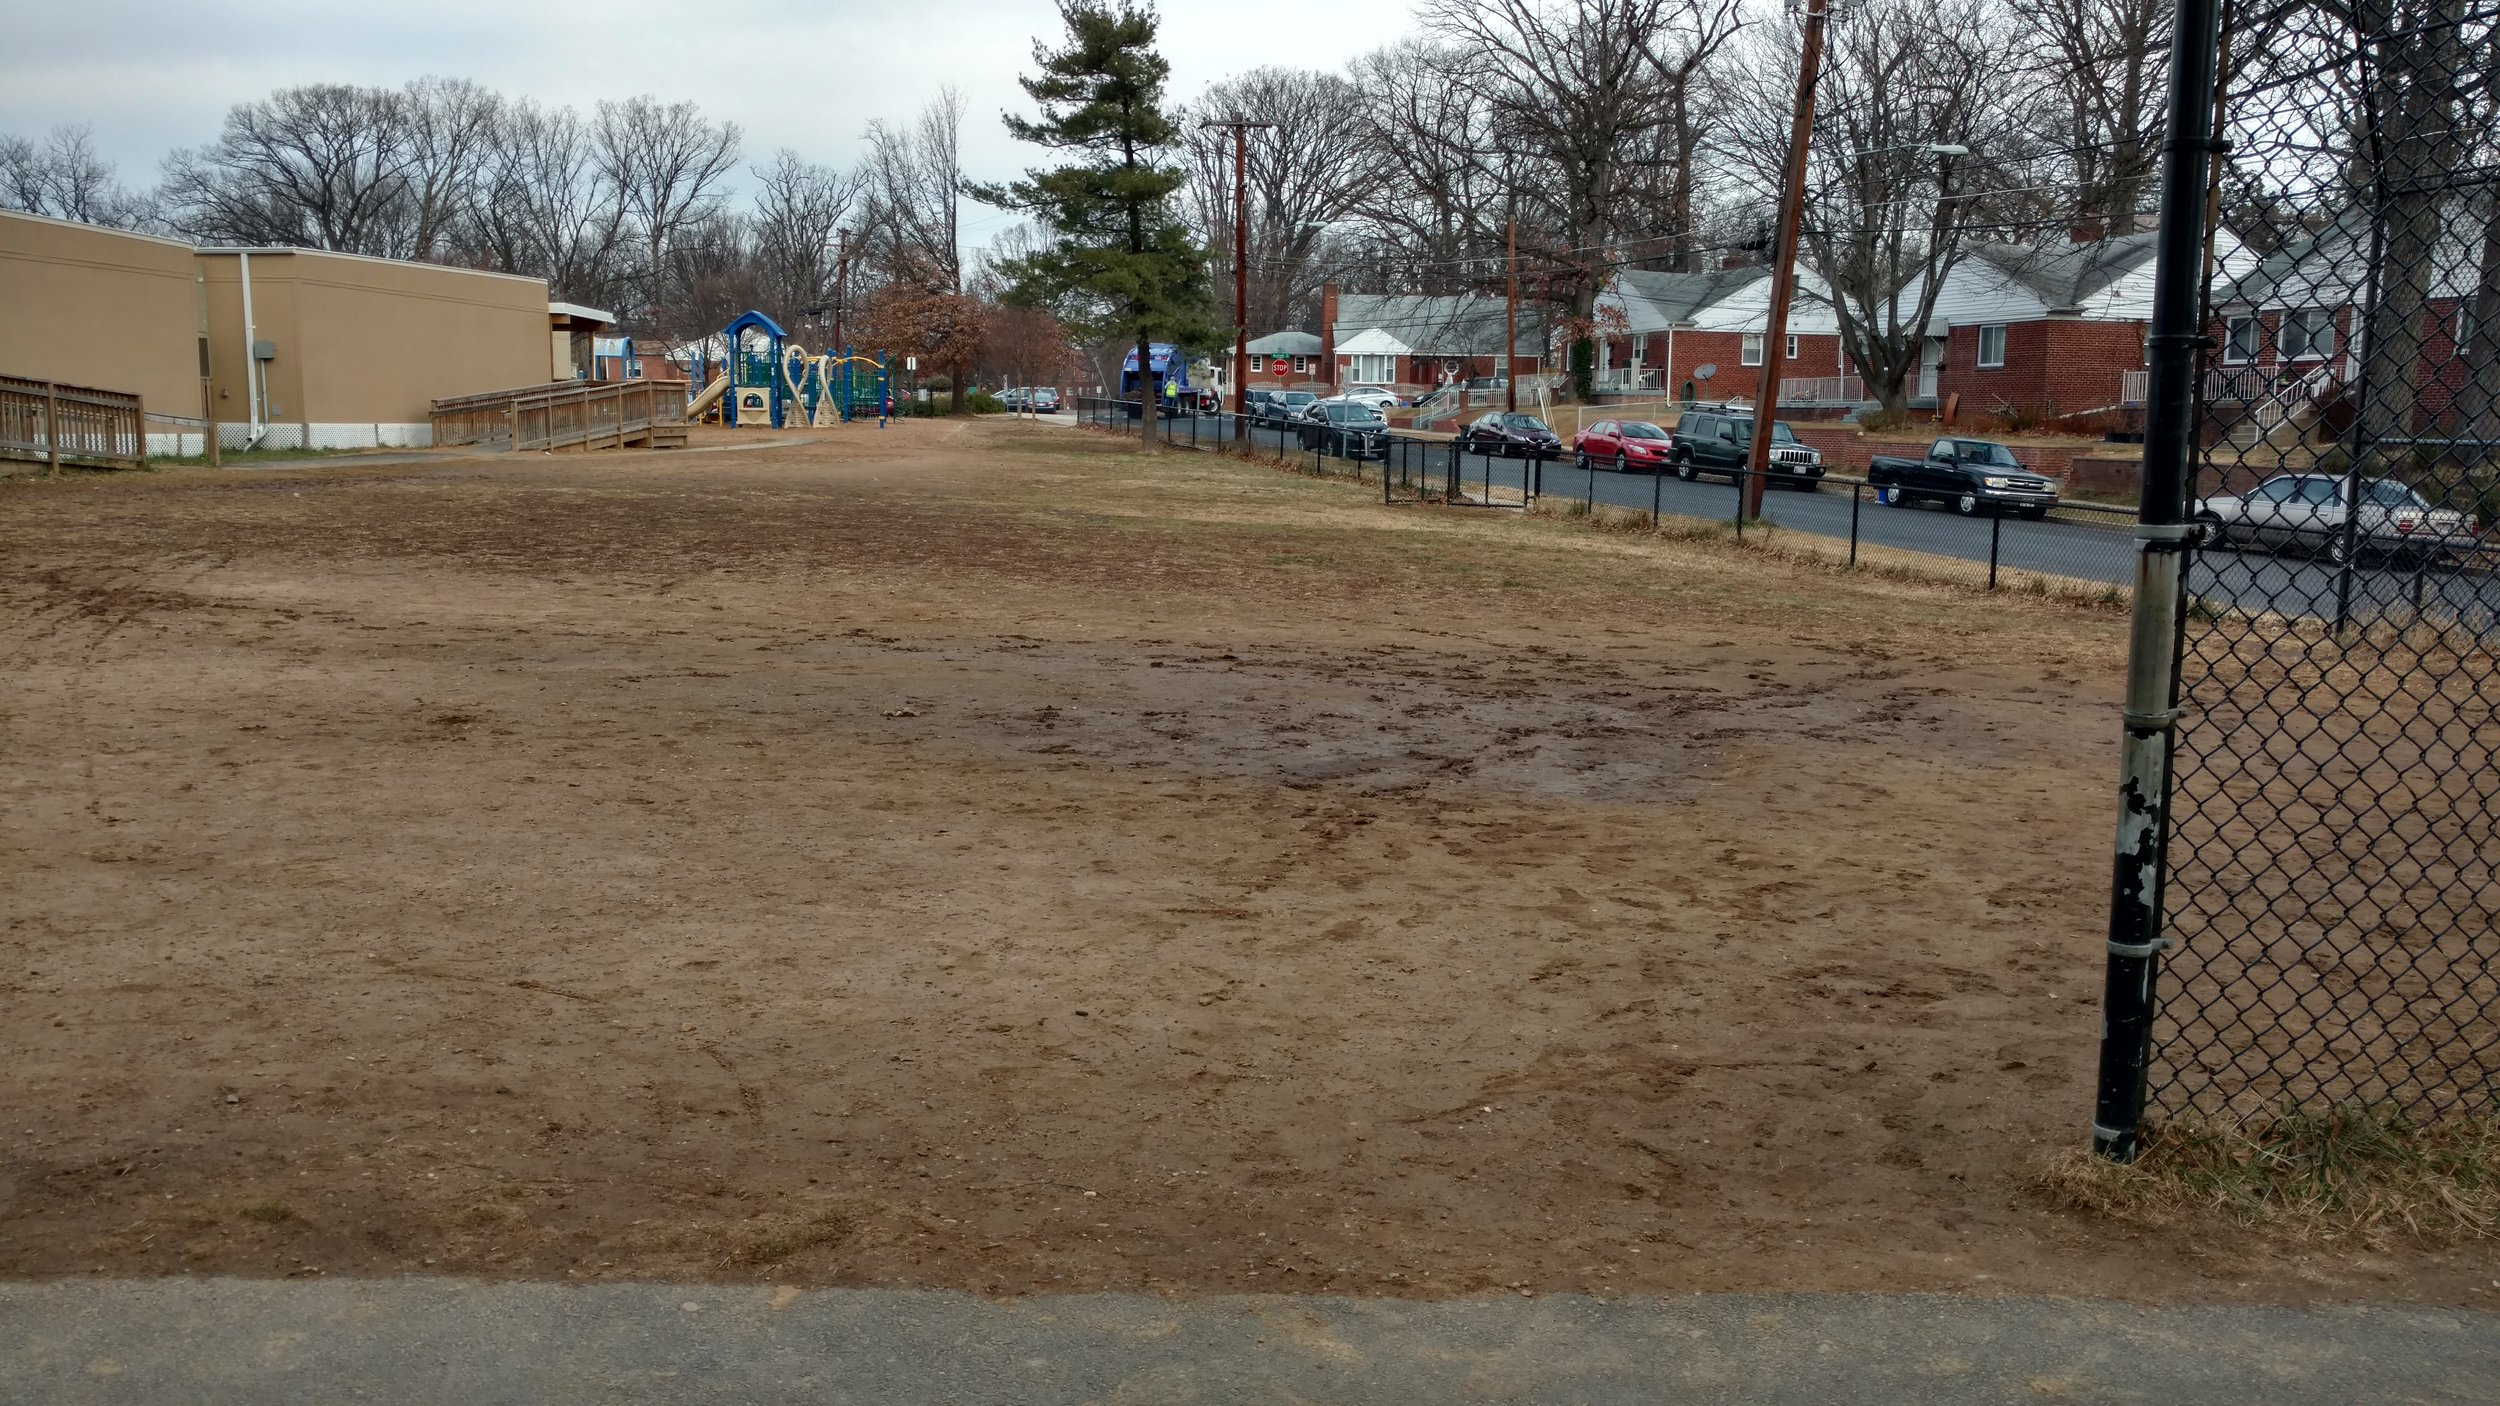 Rolling Terrace's field in December 2016. Students' families and teachers, led by the Rolling Terrace PTA,convinced Montgomery County leaders to fund field renovations at our school and others with run-down outdoor play areas.